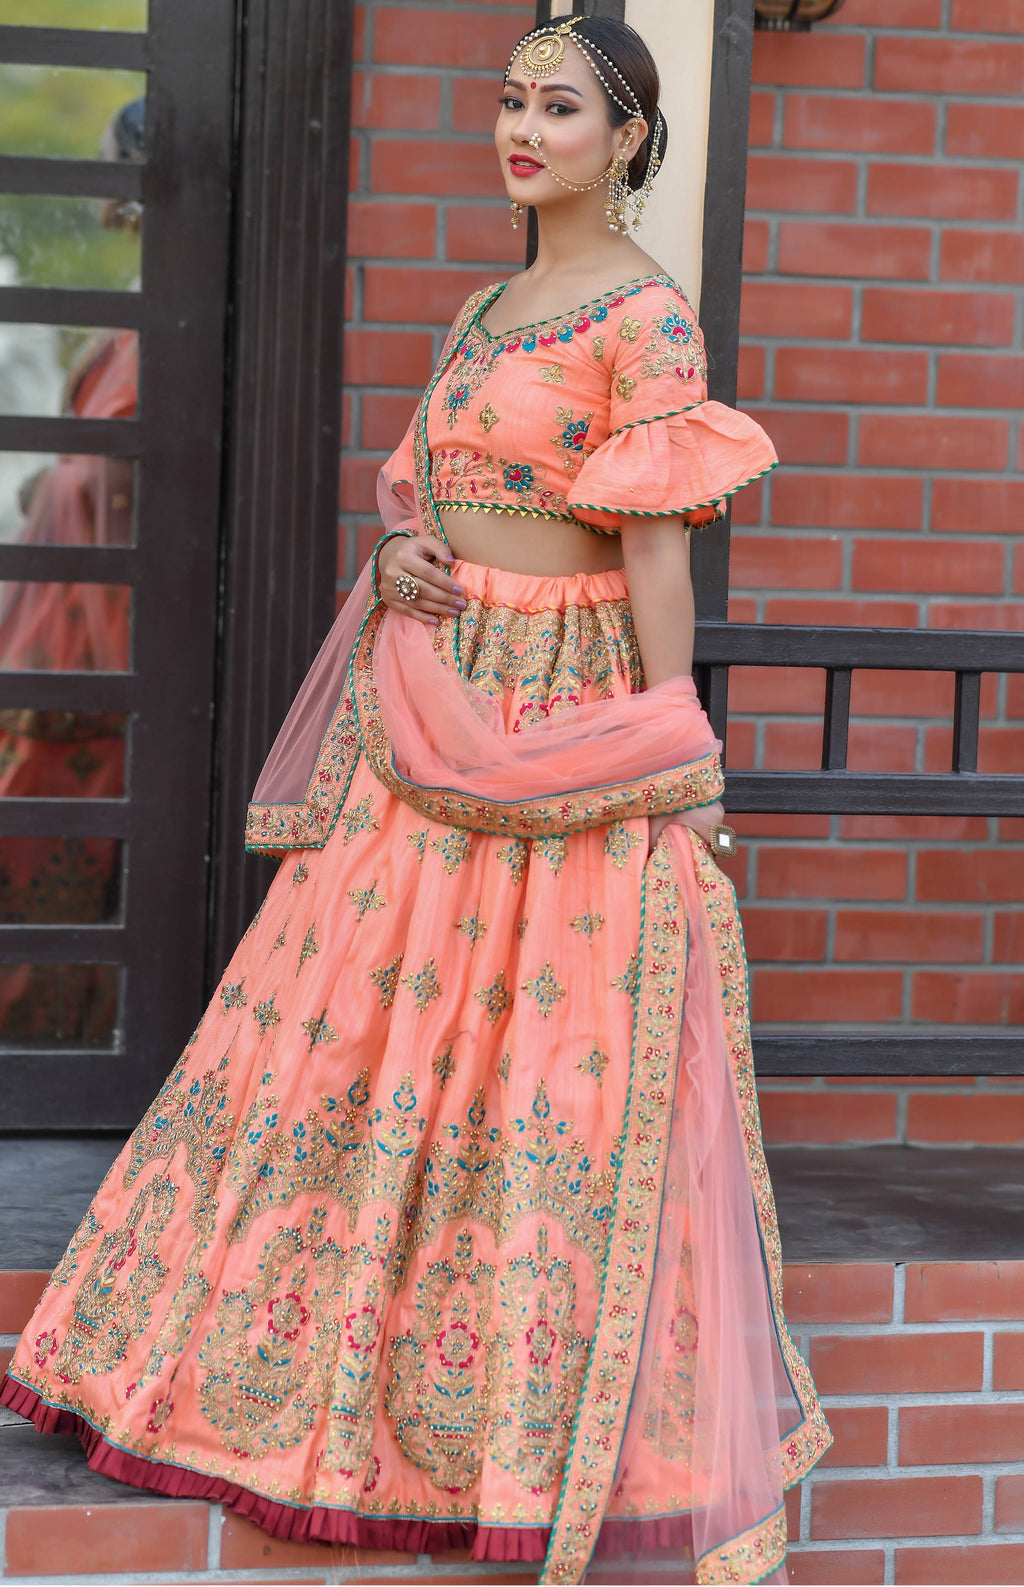 Peach Chennai Silk Embroidered Party Lehenga Designs With Price